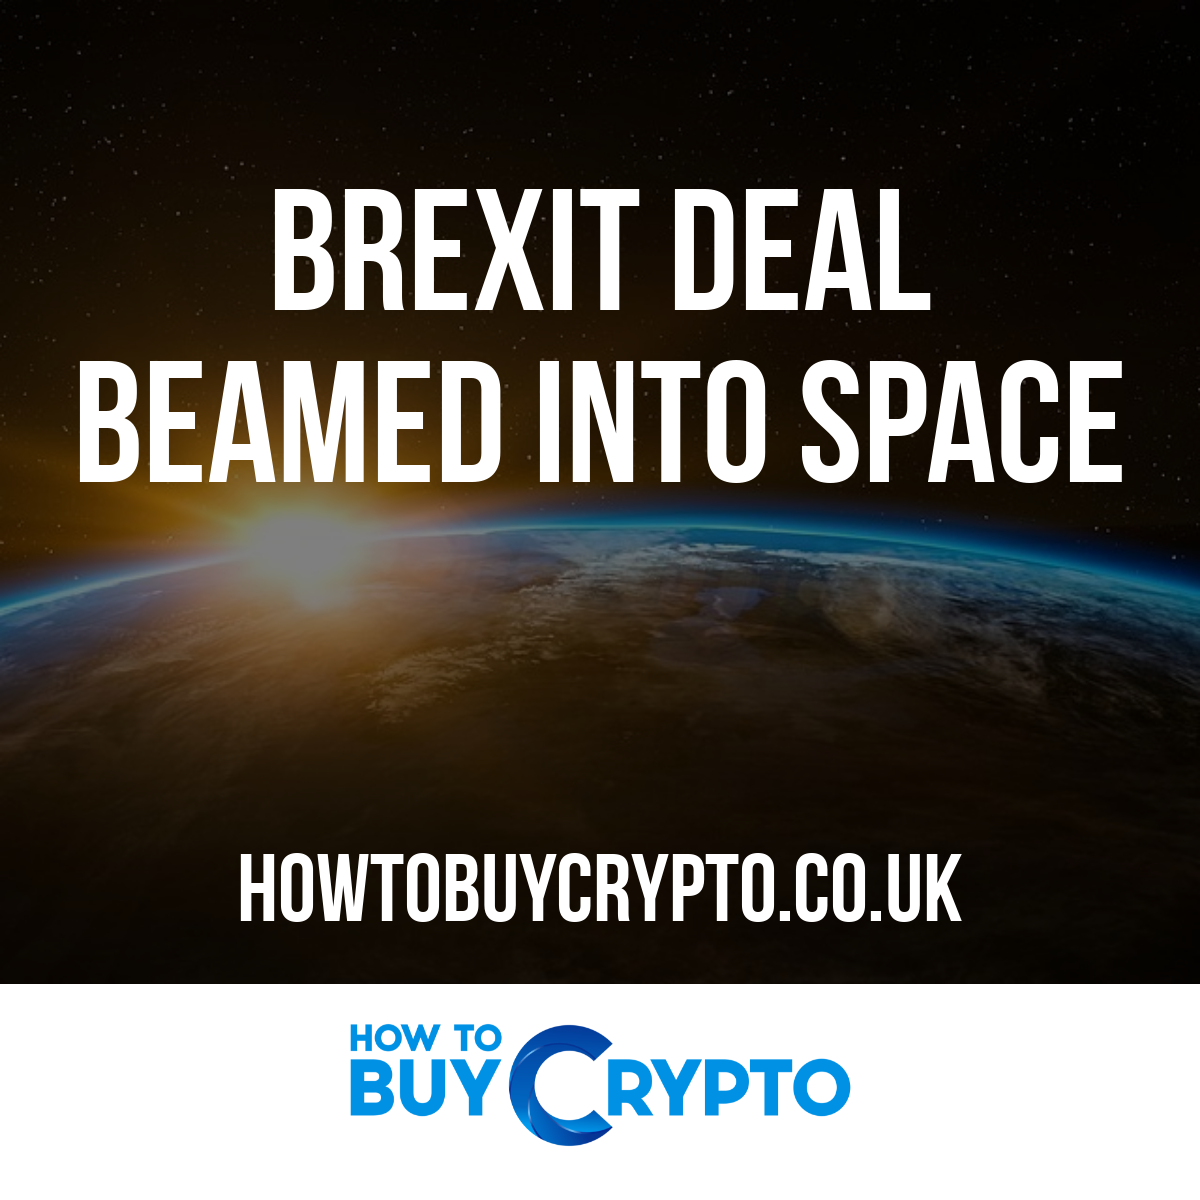 Brexit deal beamed into space